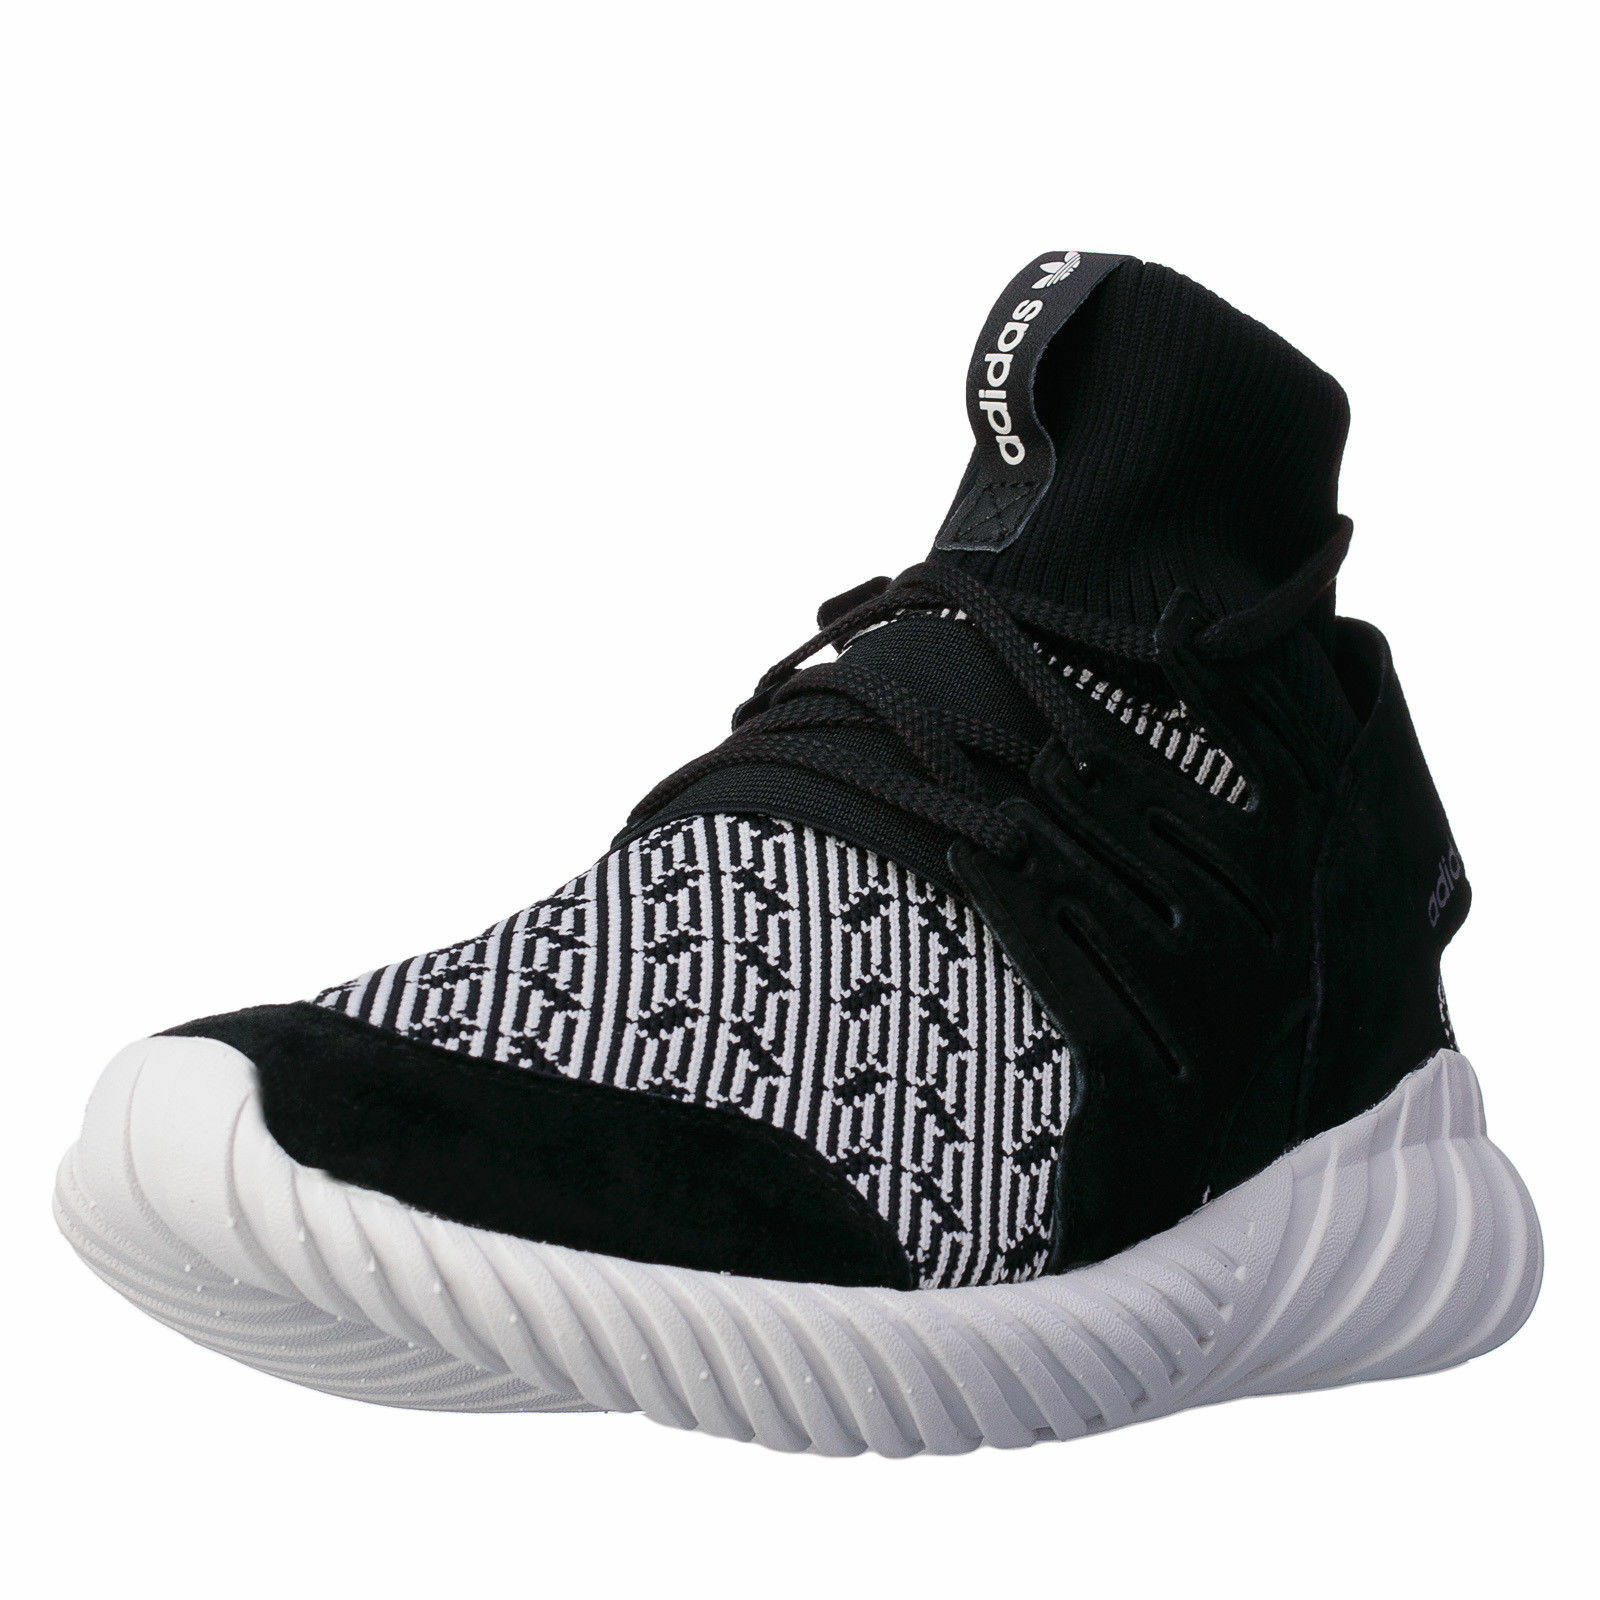 NIB ADIDAS Mens 10 TUBULAR DOOM PK PRIMEKNIT S80096 LIFESTYLE CASUAL SHOES Price reduction